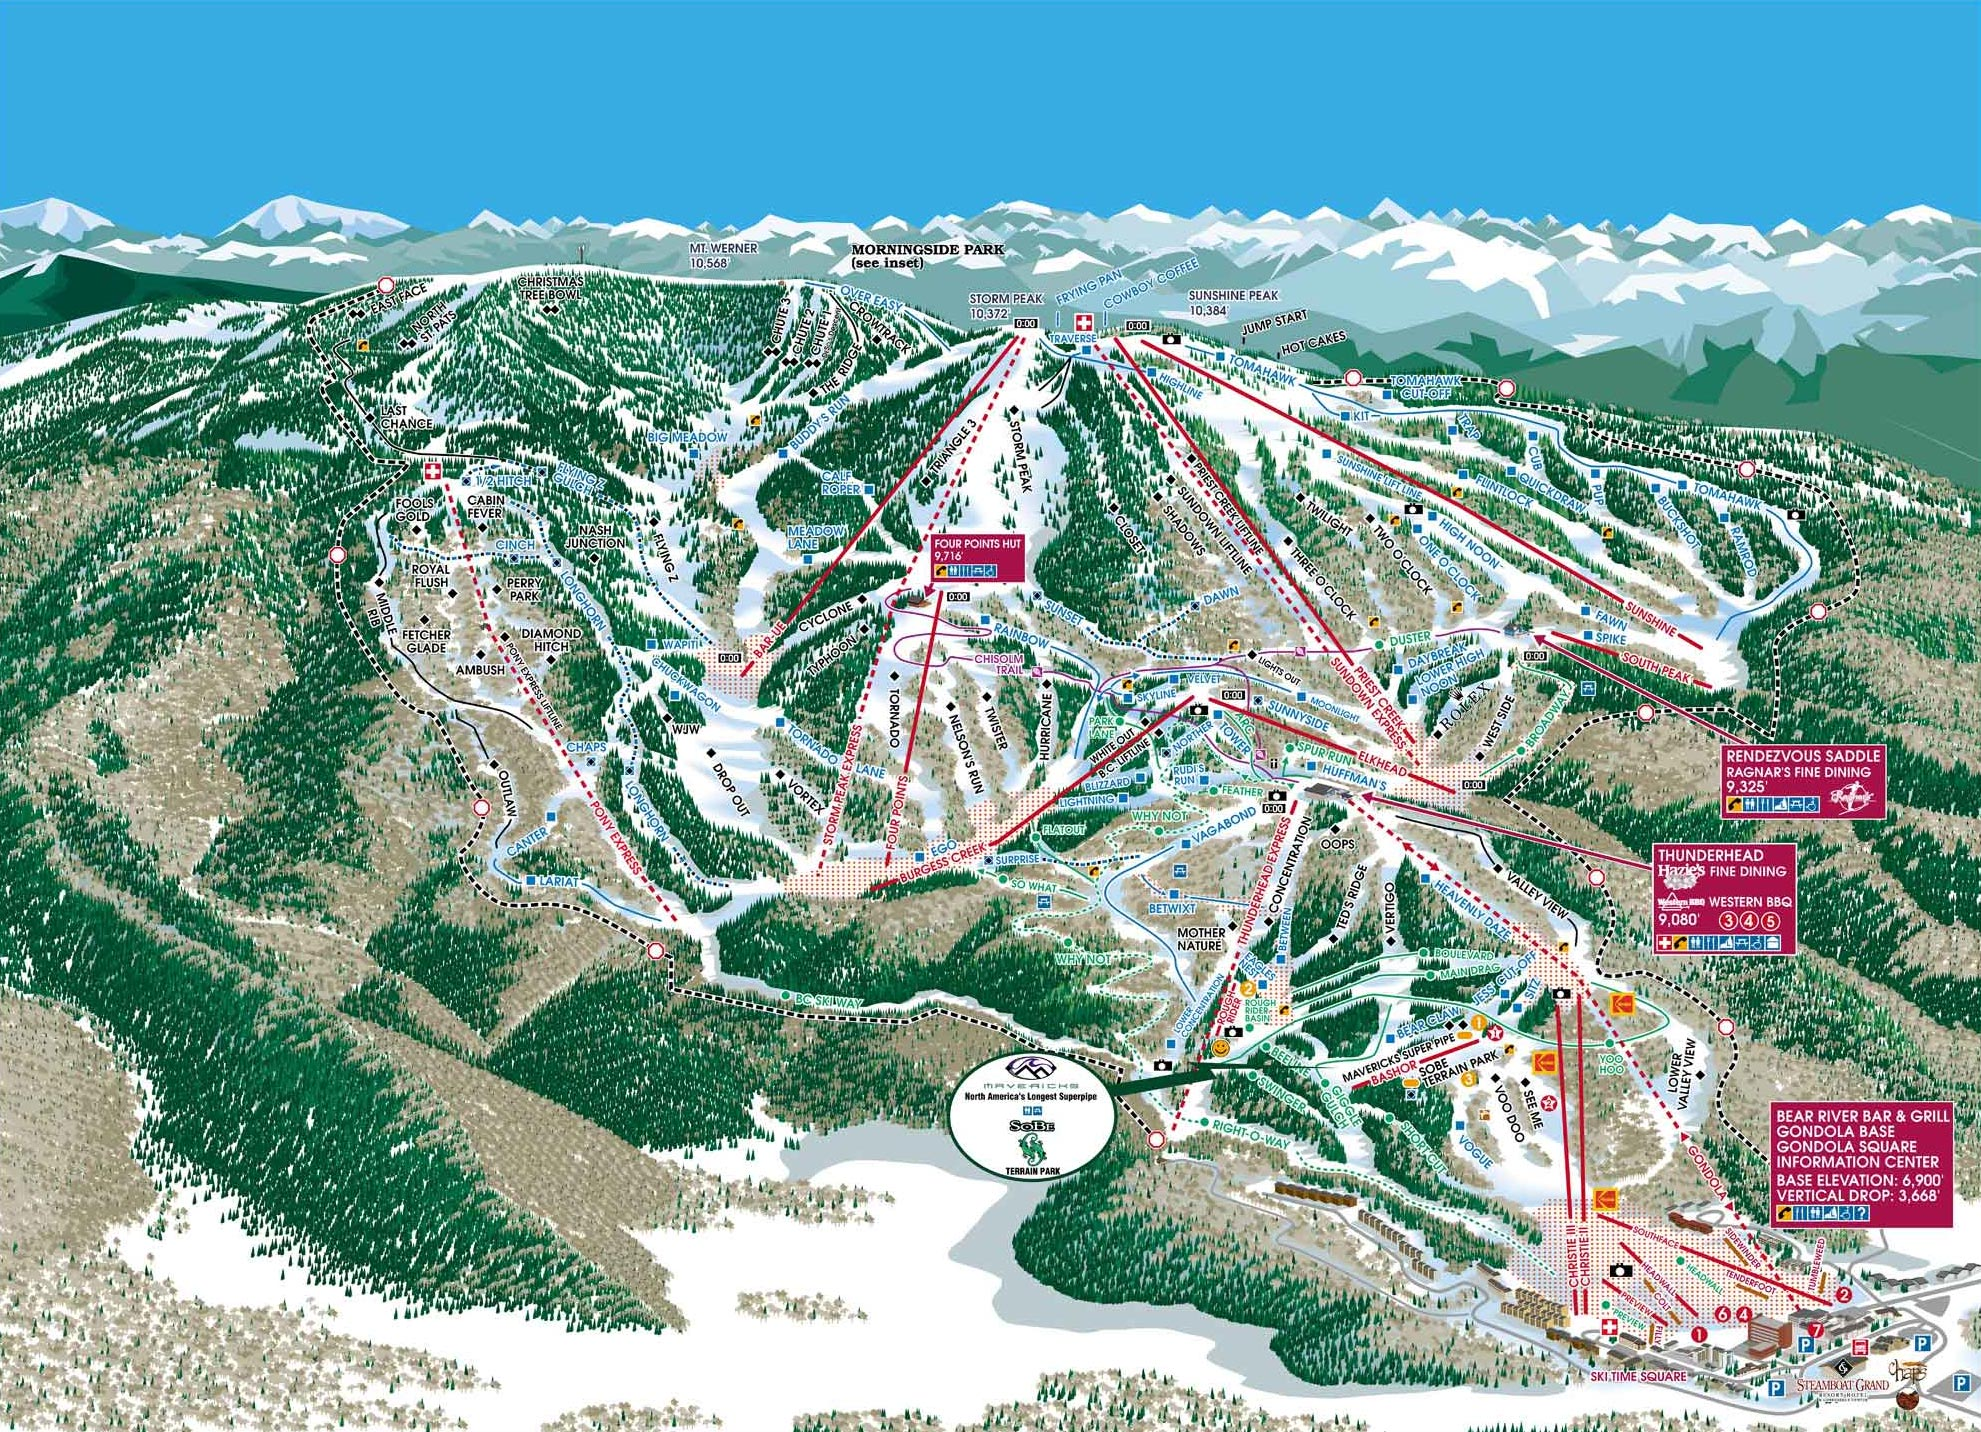 mount snow trail map with Skiarea on Grands Mulets Mont Blanc together with 882112 further Best Indoor Water Parks Near Nyc besides Schweitzer Mountain Trail Map 2 besides Snow Bike Route.